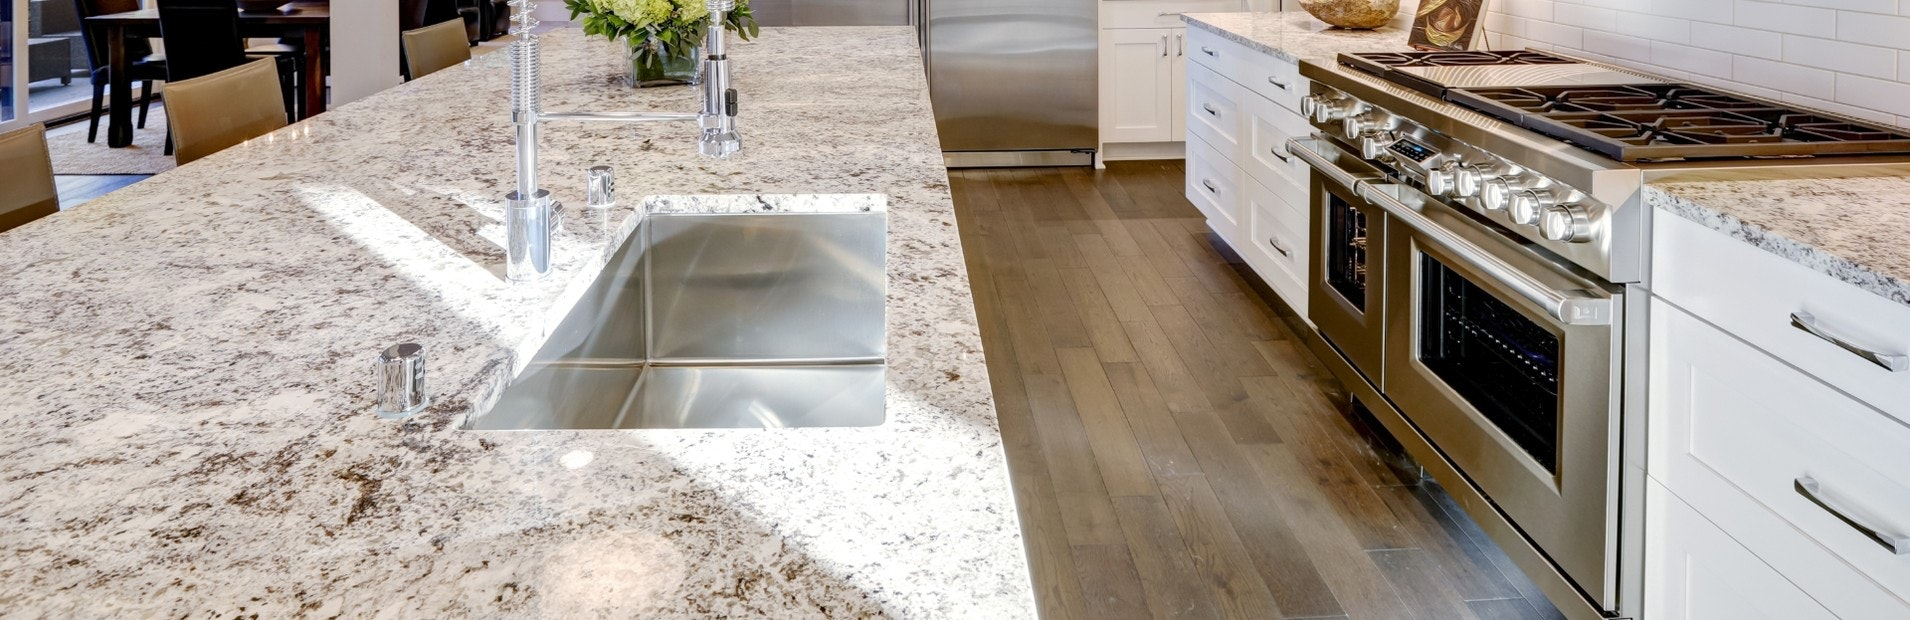 How To Pair Kitchen Countertops And Cabinets